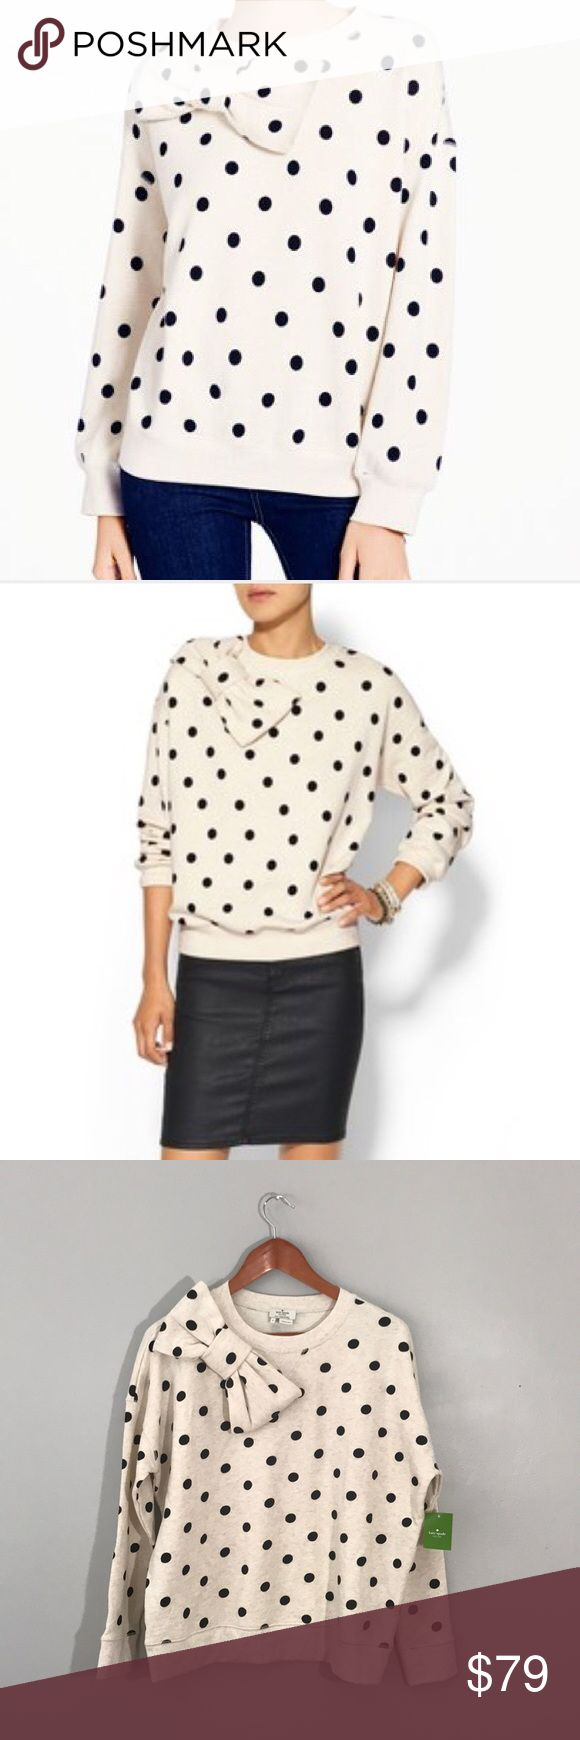 """NWT Kate Spade Deco Dot Bow Sweatshirt NWT Kate Spade Deco Dot Bow Sweatshirt in heathered oatmeal and black polka dot pattern featuring an oversized bow at the shoulder.  Size small, this slouchy top measures approximately 25"""" from armpit to armpit laid flat and is 25"""" in length. kate spade Tops Sweatshirts & Hoodies"""